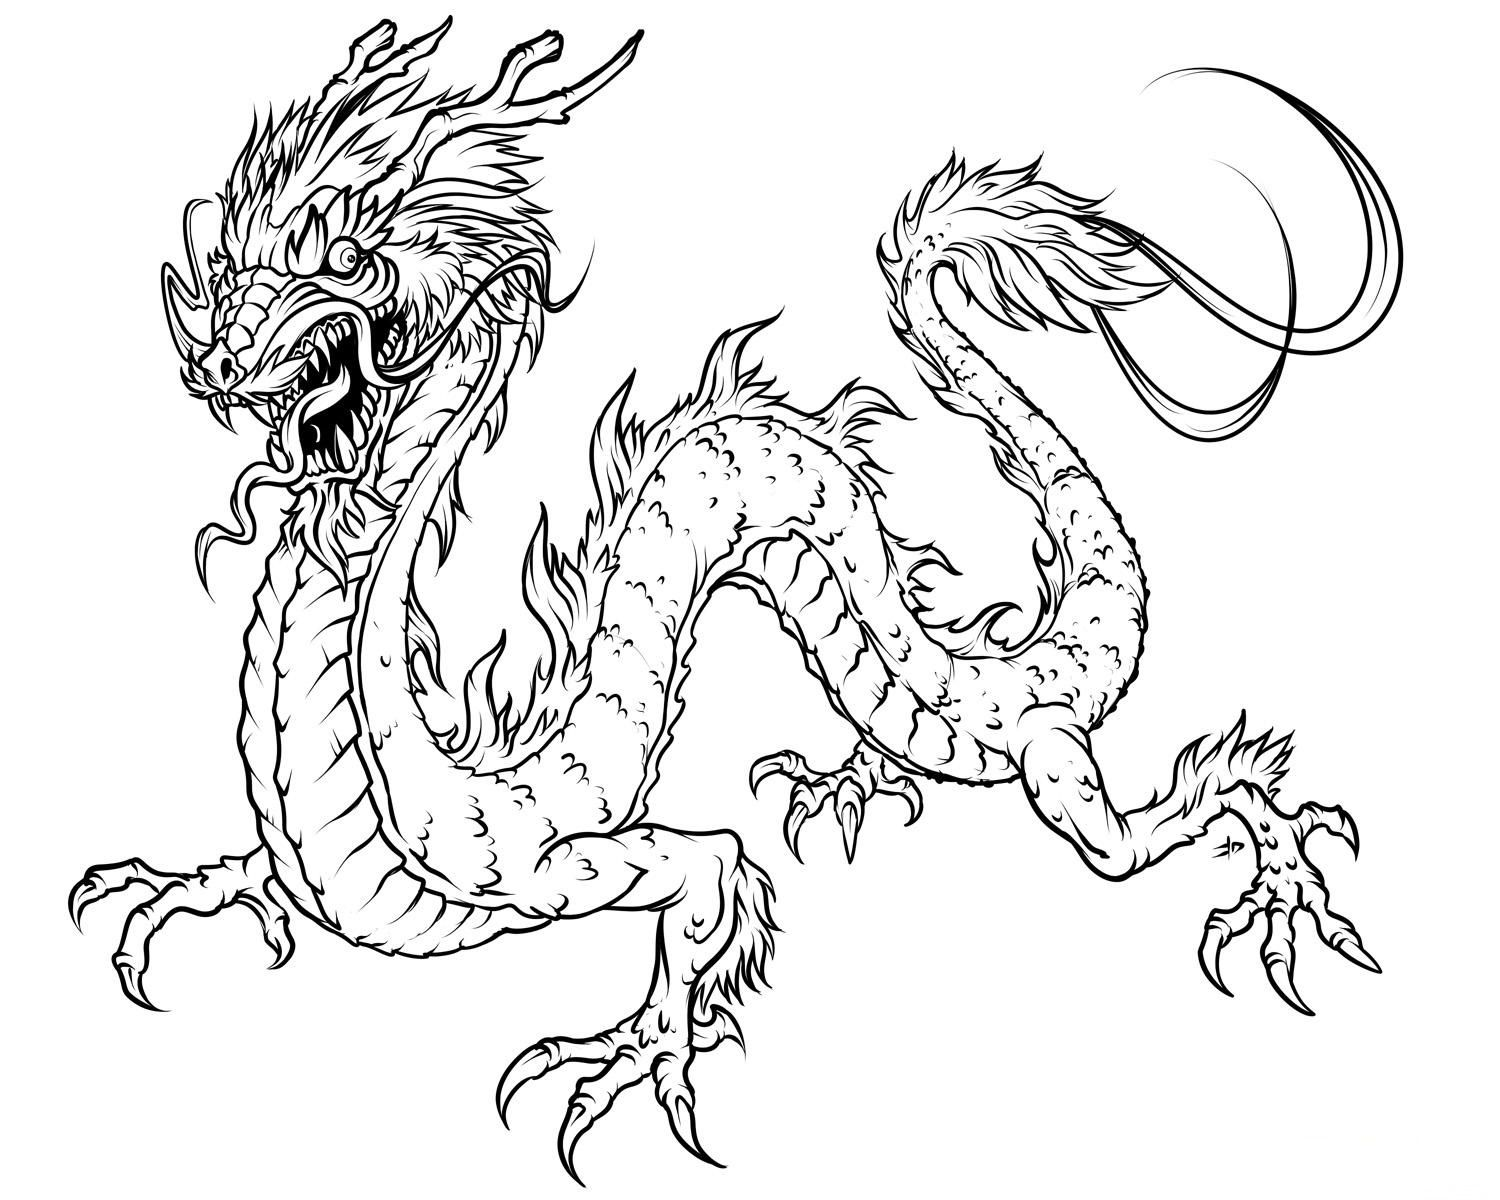 Drachen Ausmalbilder Zum Ausdrucken : Fanacy Printable Coloring Pages For Adults Free Printable Dragon